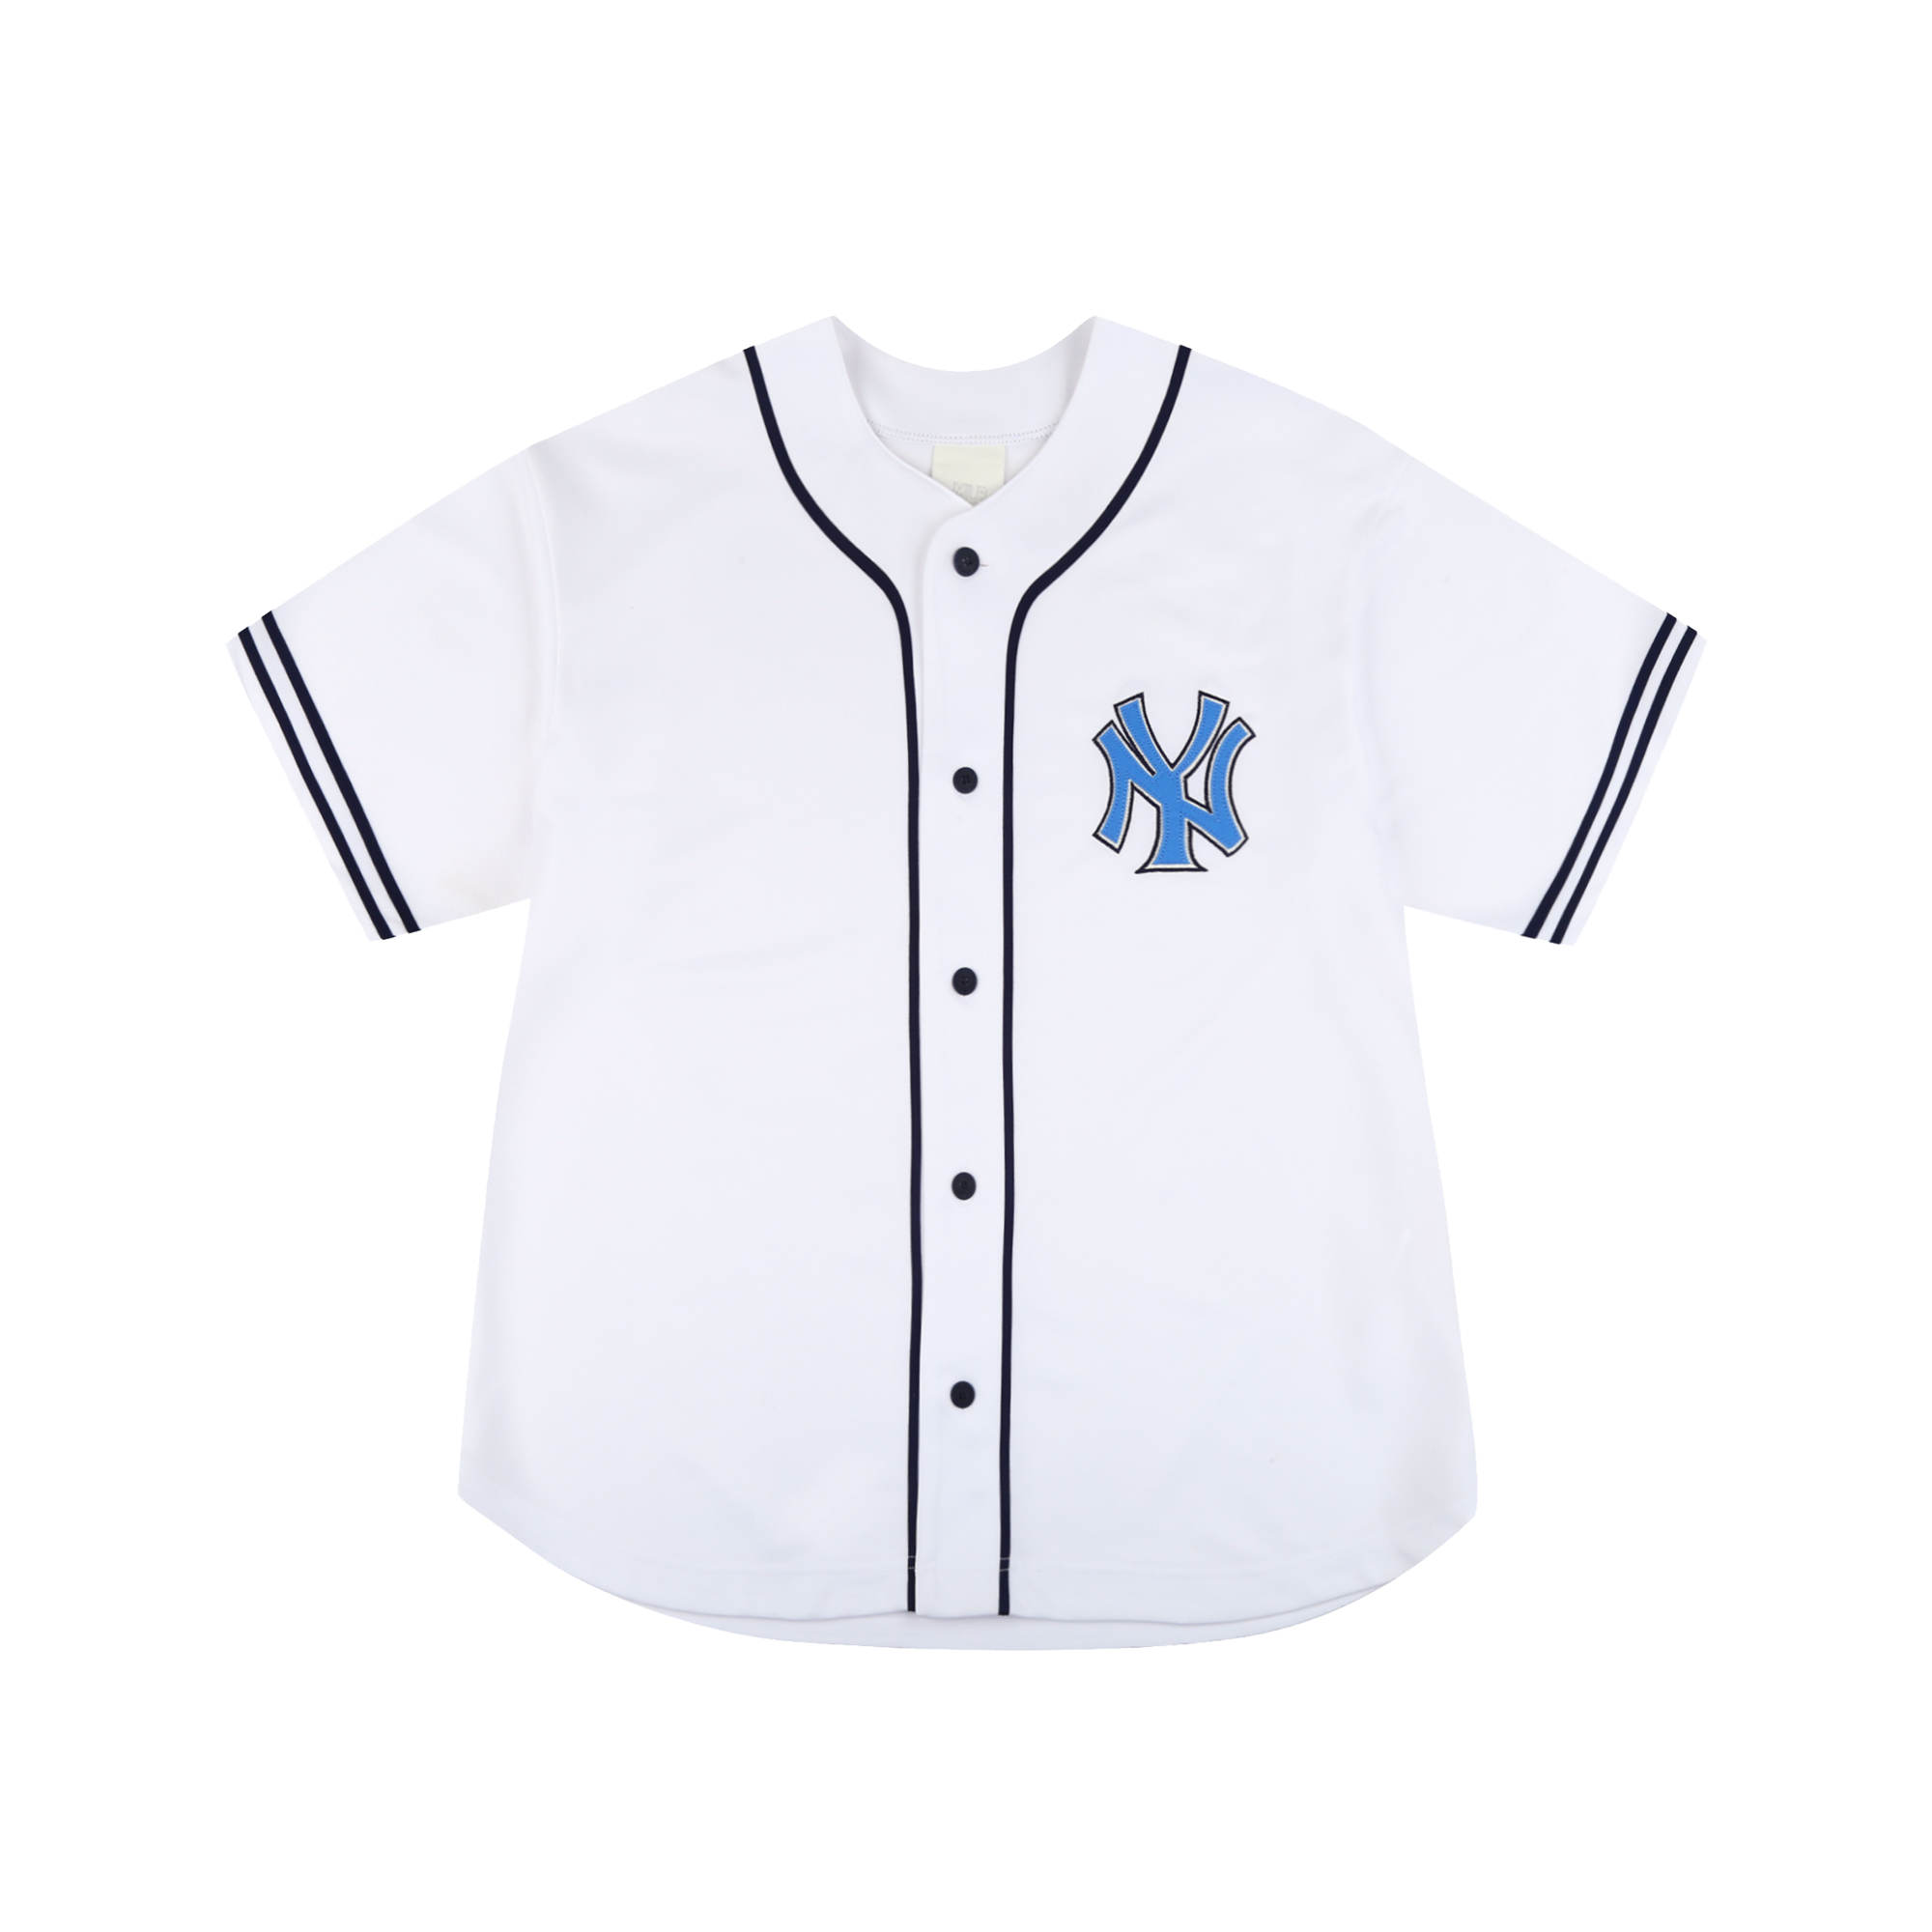 NEW YORK YANKEES COOPERS AUTHENTIC BASEBALL JERSEY